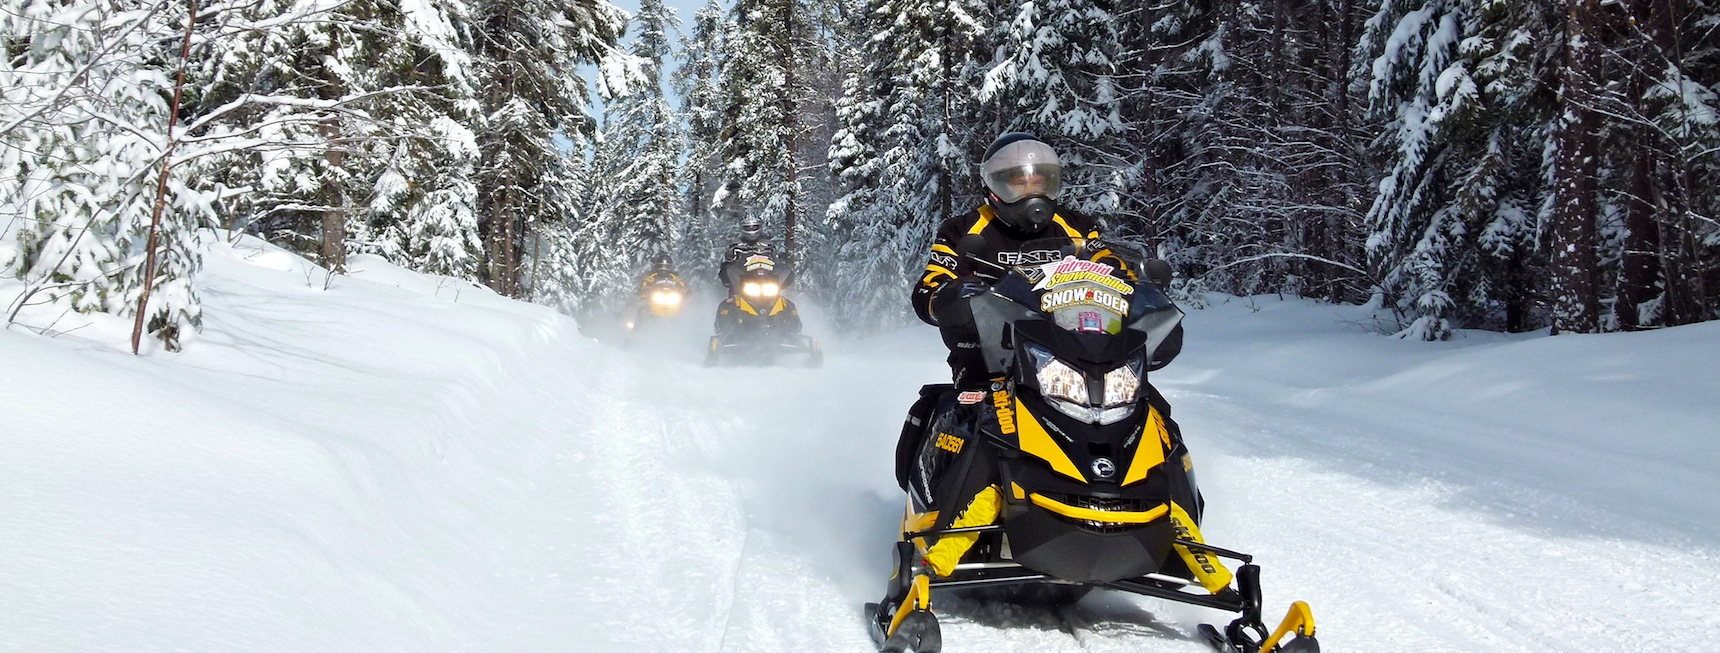 Snowmobile Abitibi Témiscamingue Quebec Tour